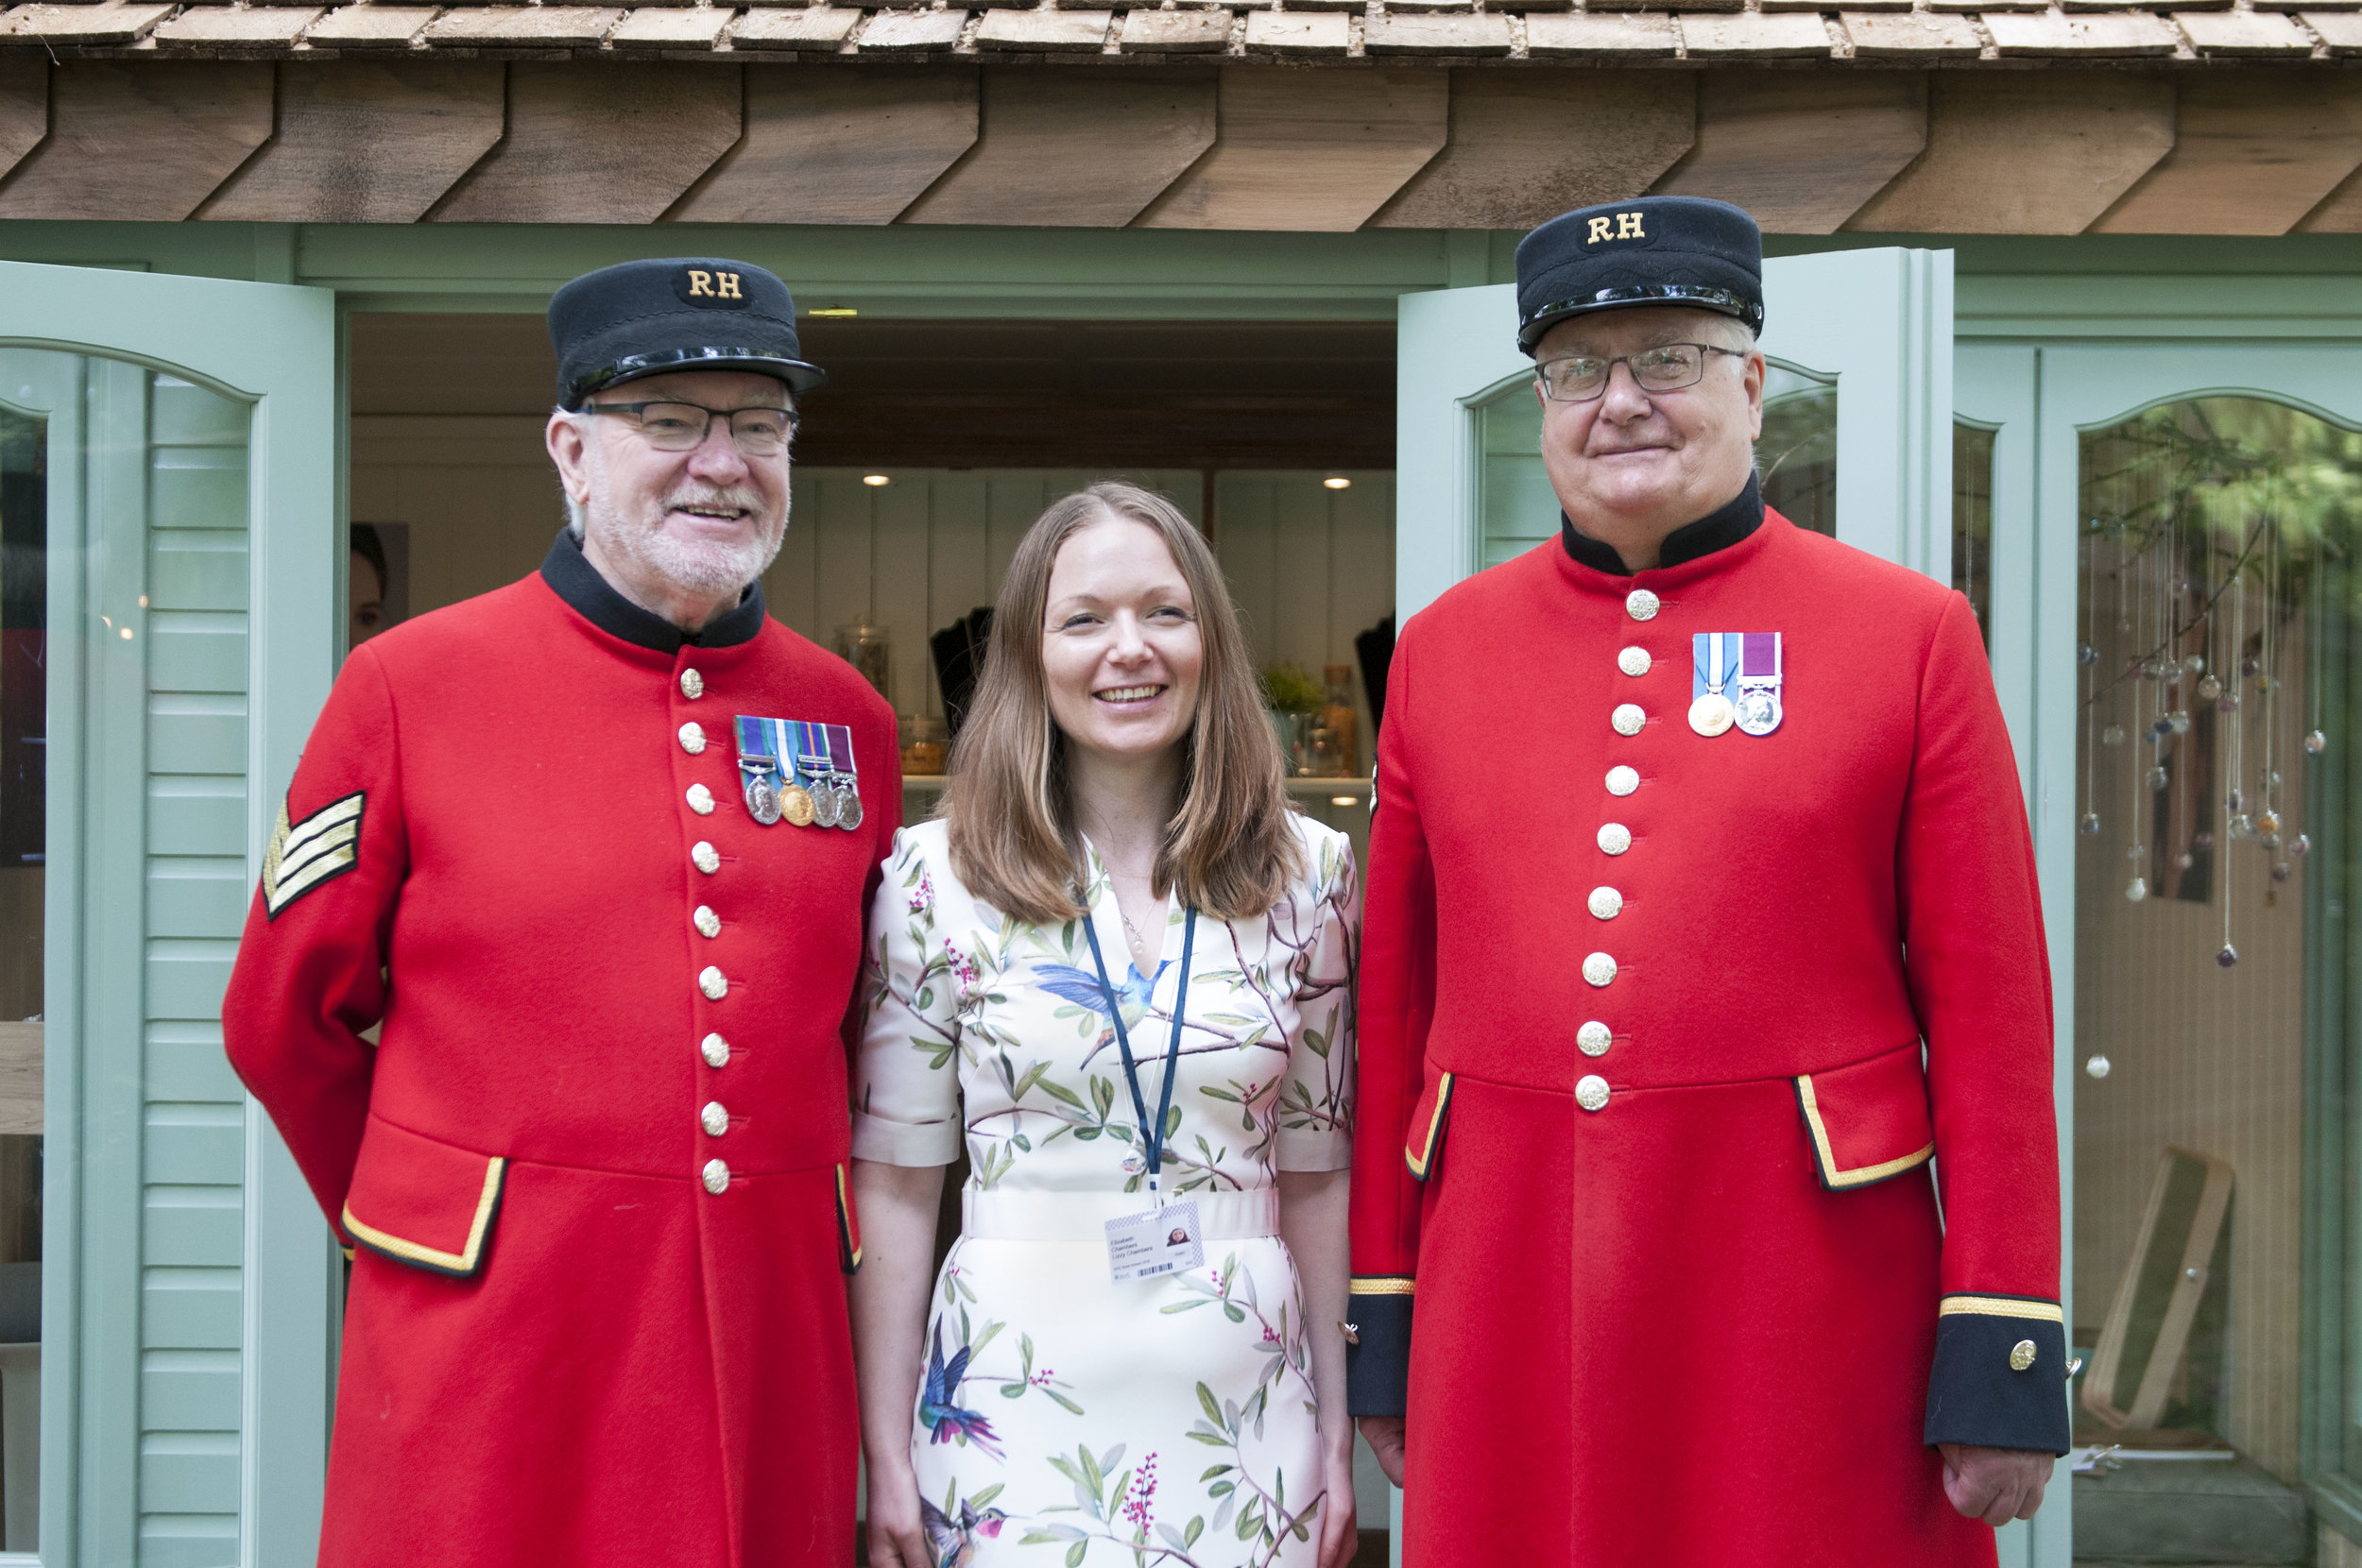 Lizzy Chambers with Chelsea Pensioner 2.jpg